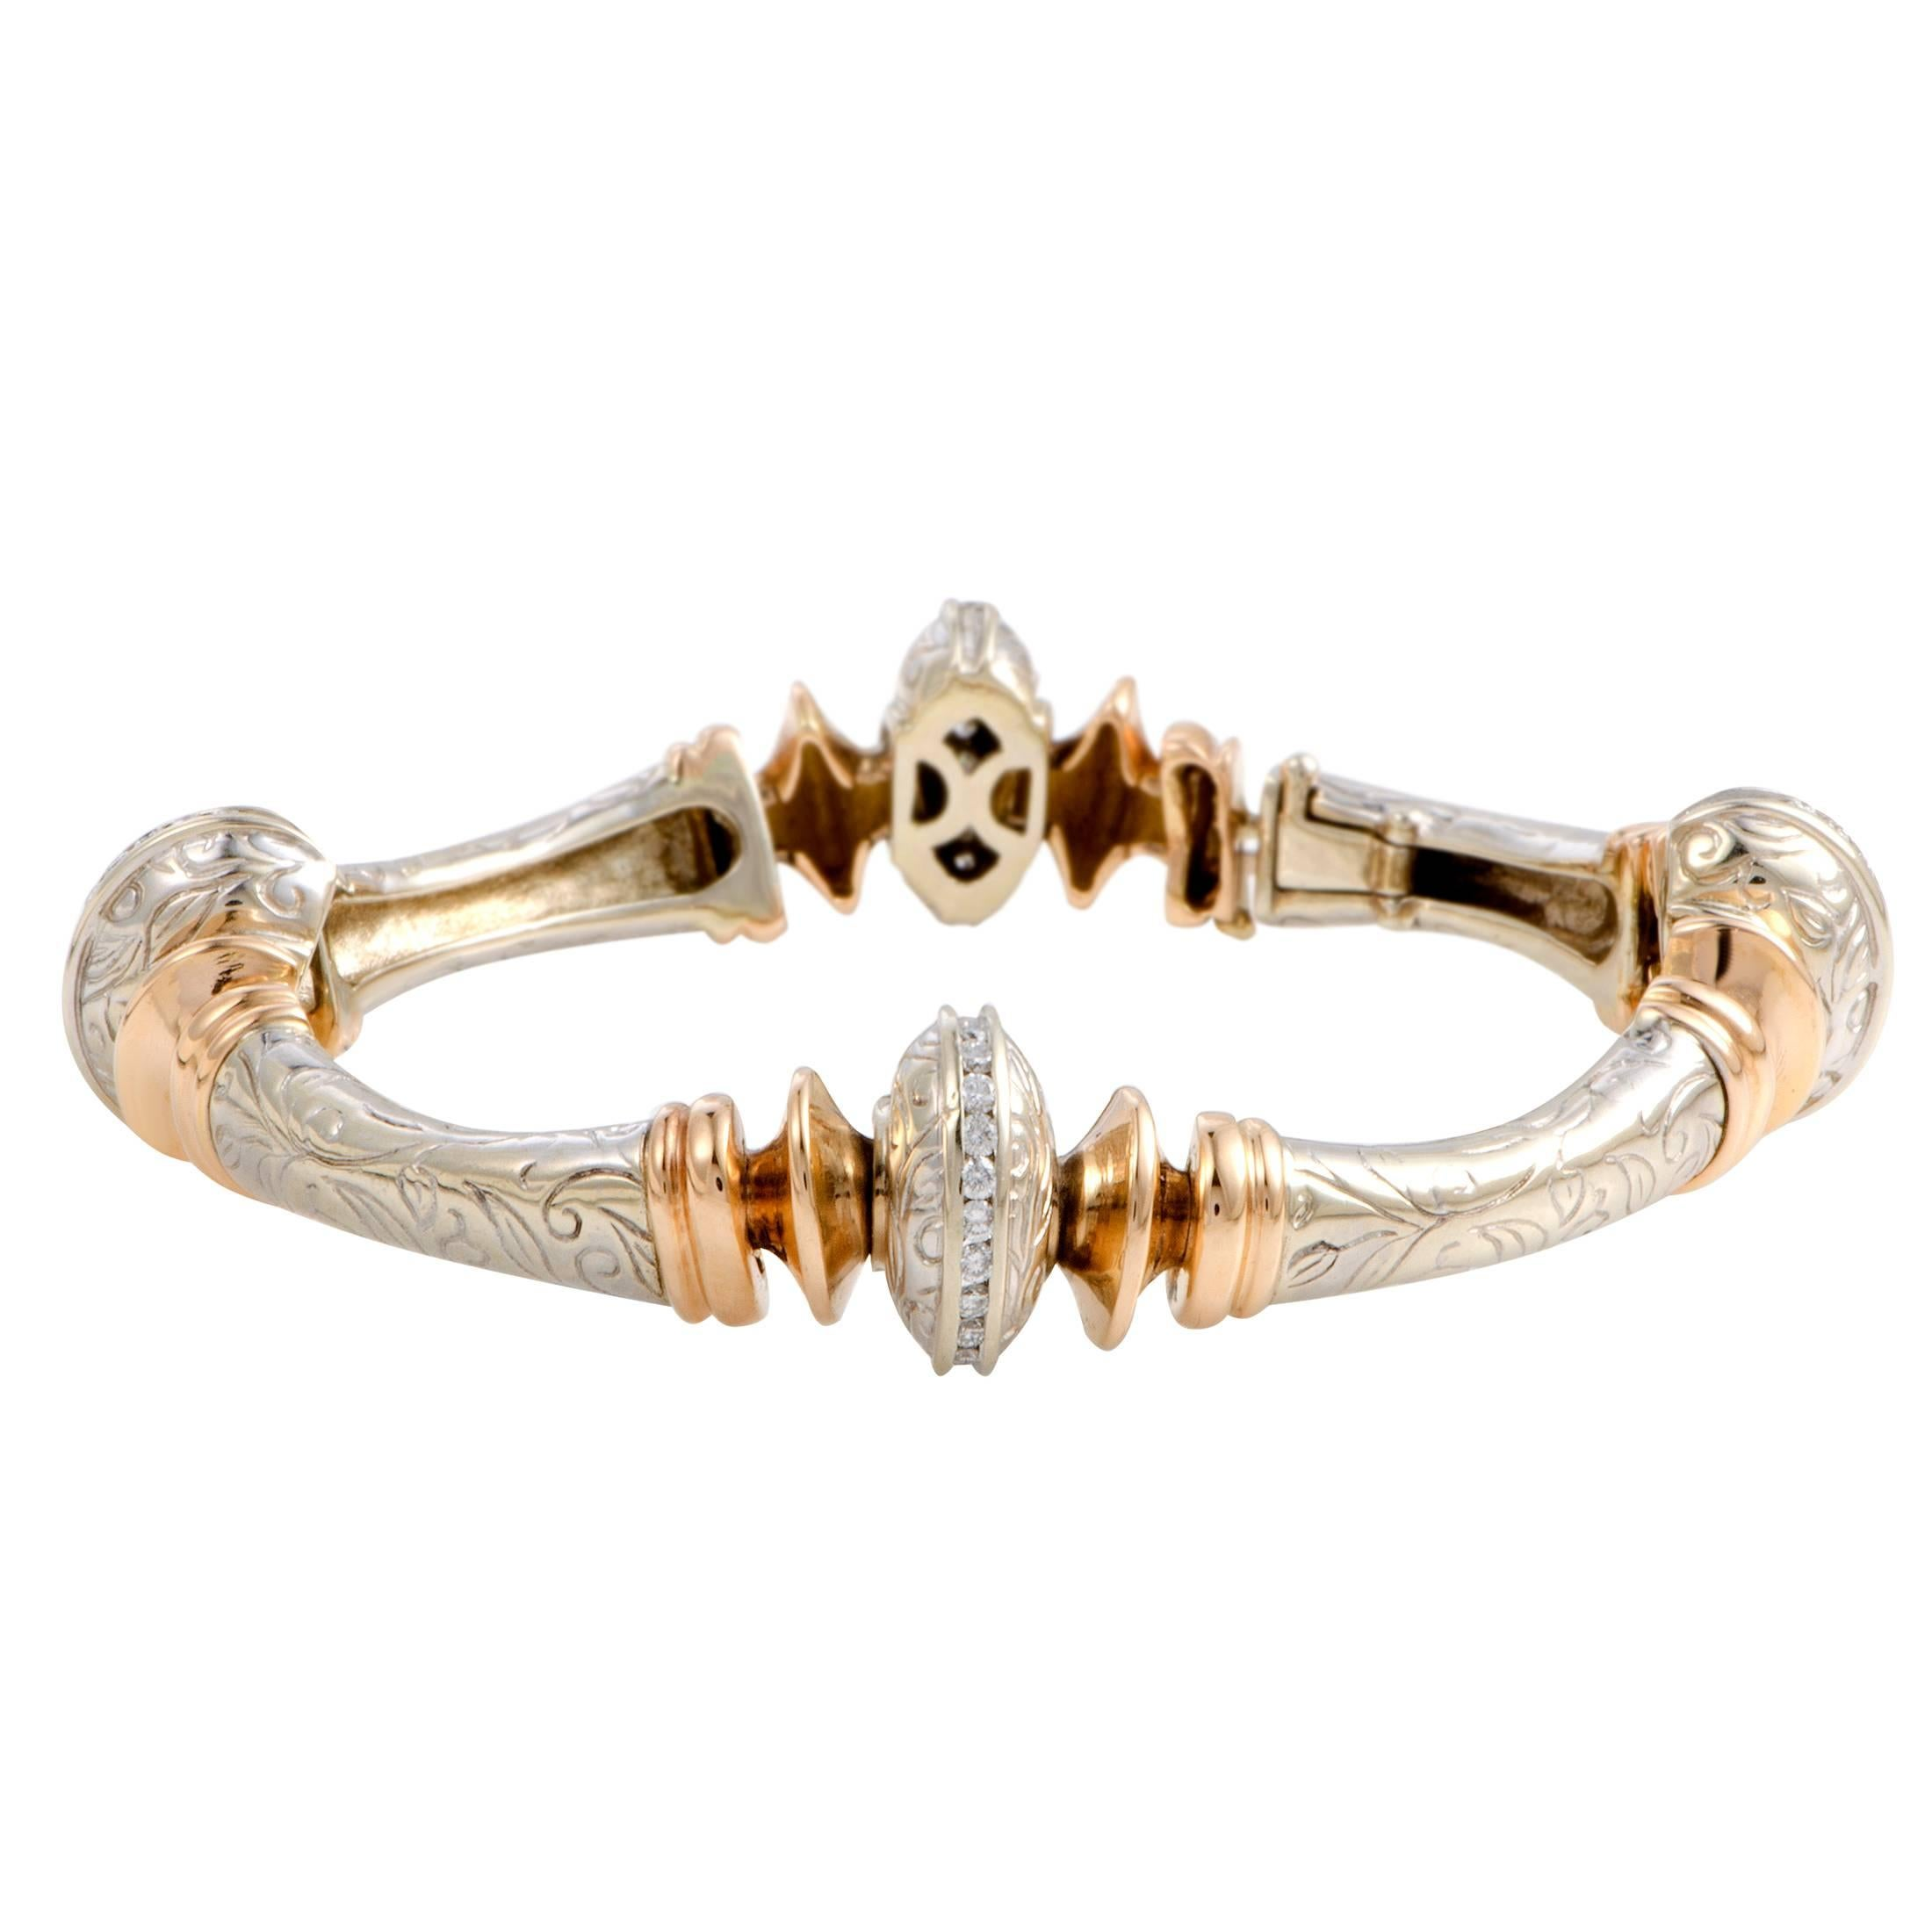 bracelet bangle diamond roberto with diamonds product italian s yellow and row barocco in coin gold white